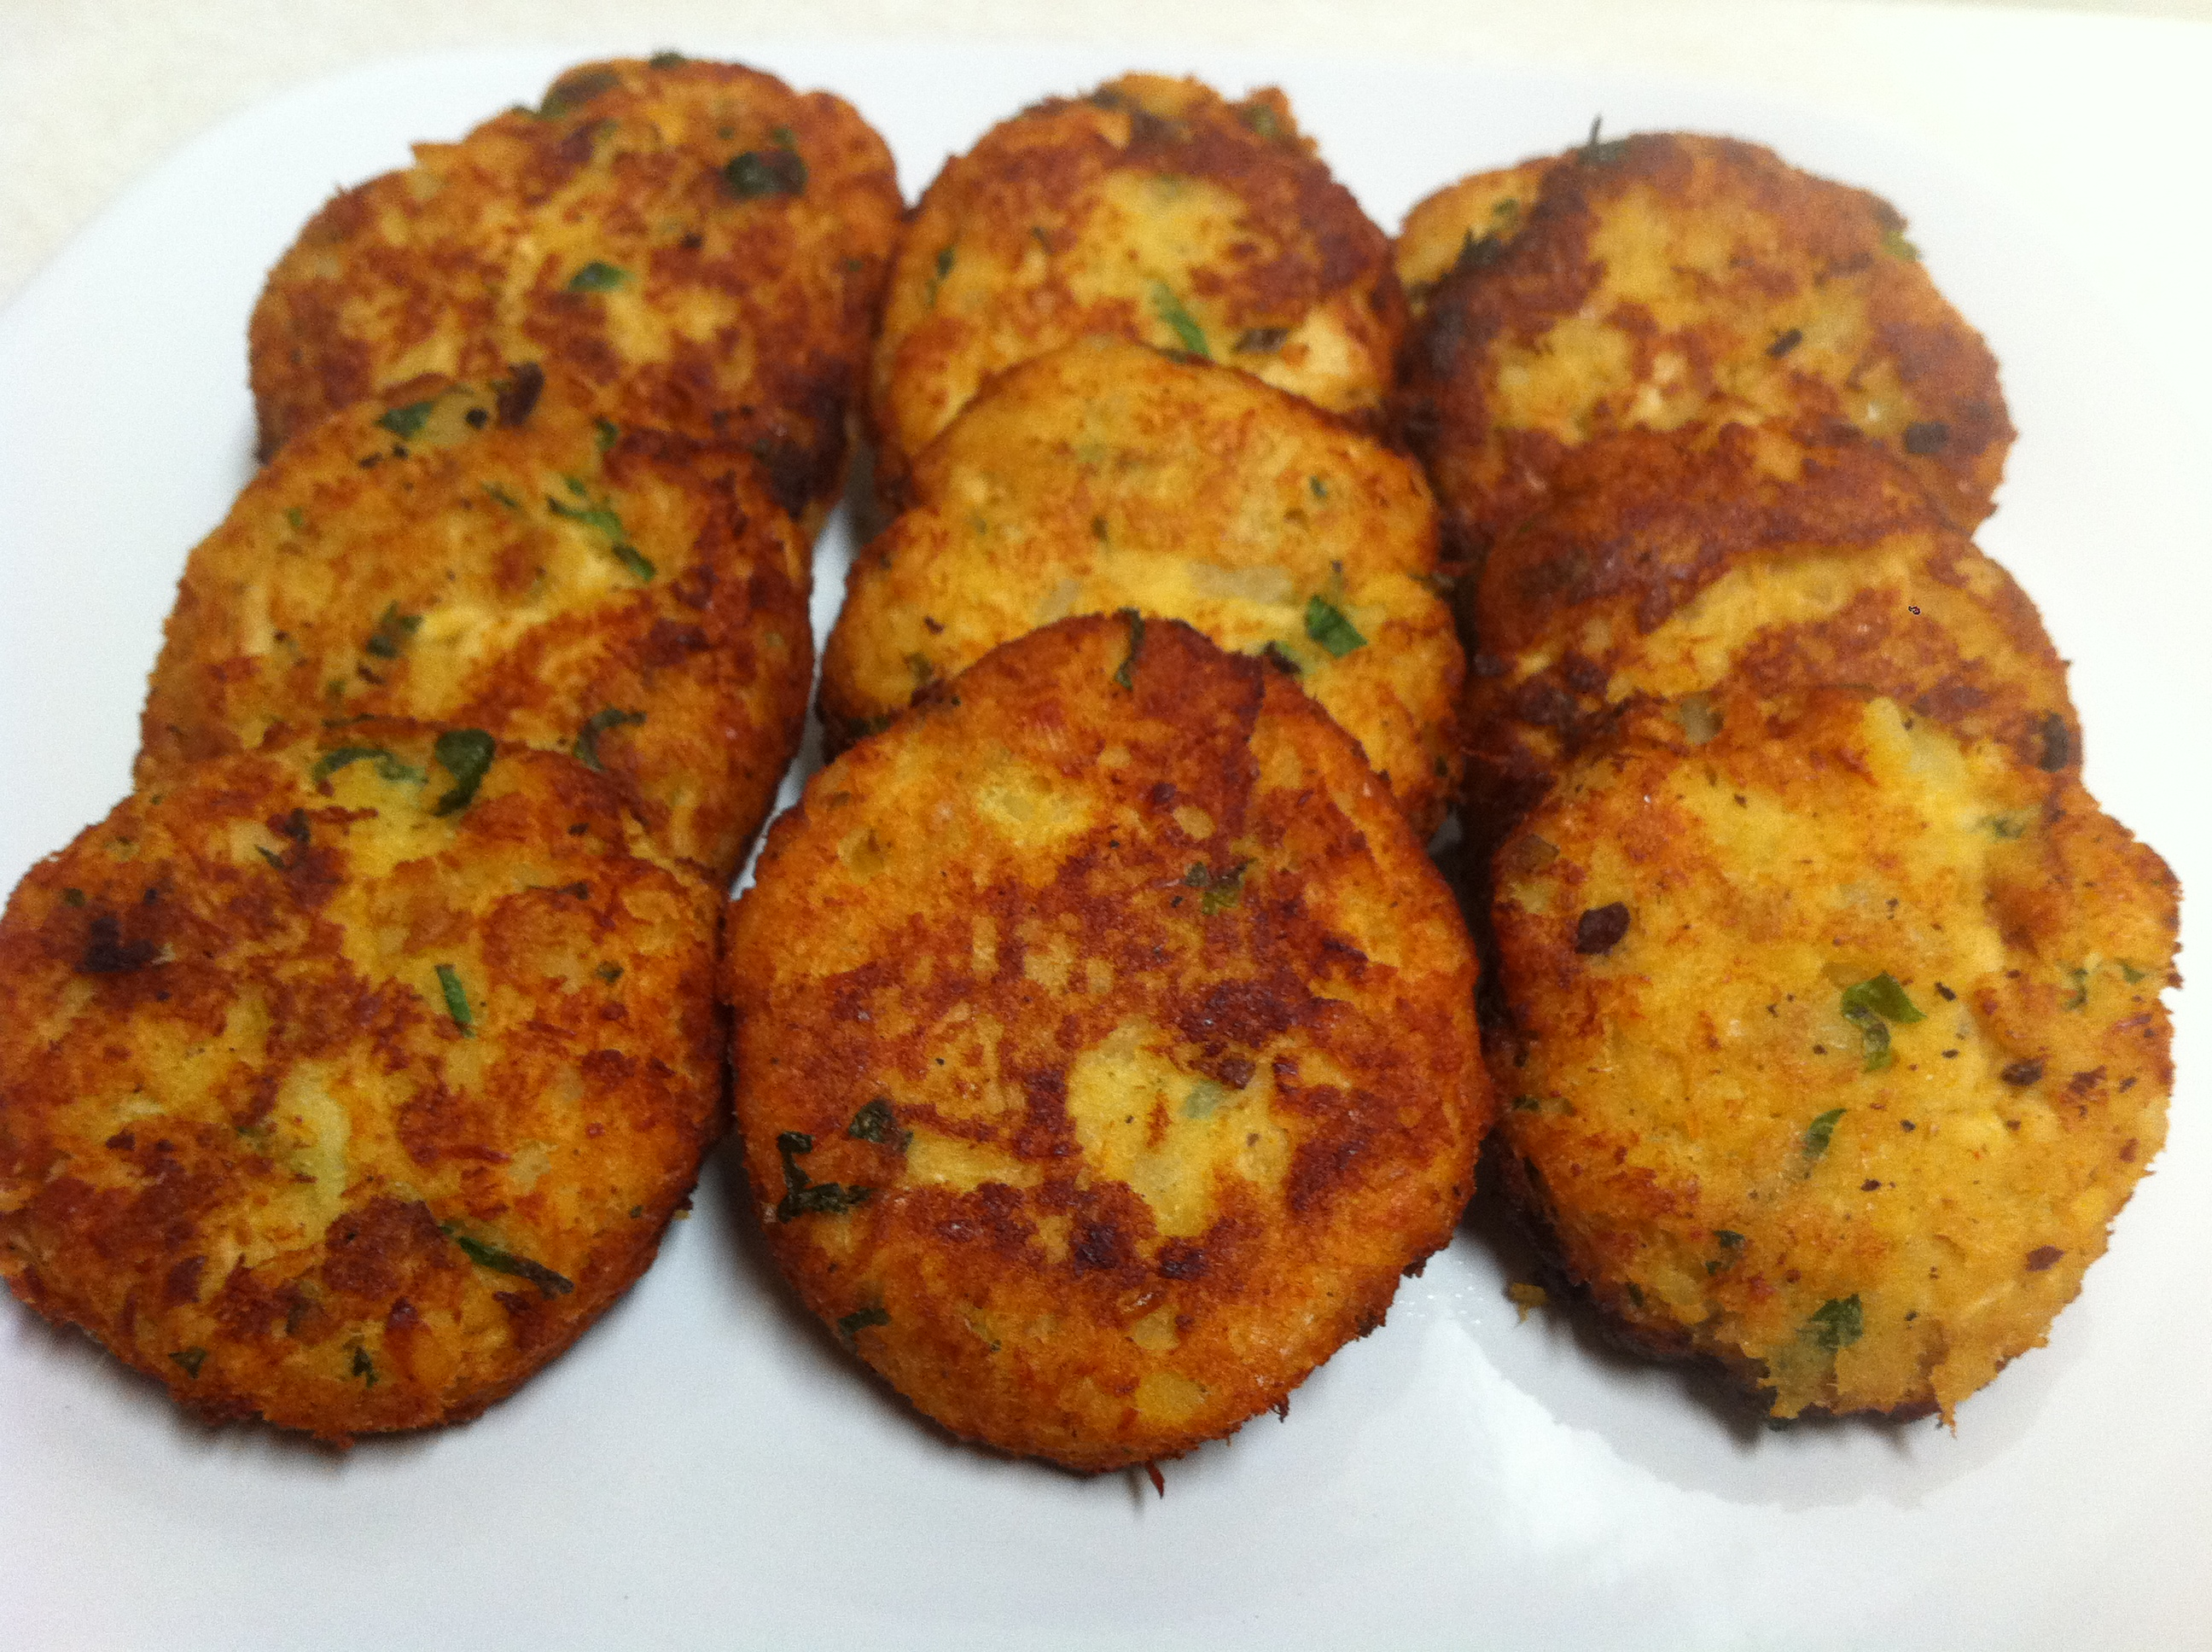 ... tuna patties with sweet tuna cakes serving size 5 patties tuna patties